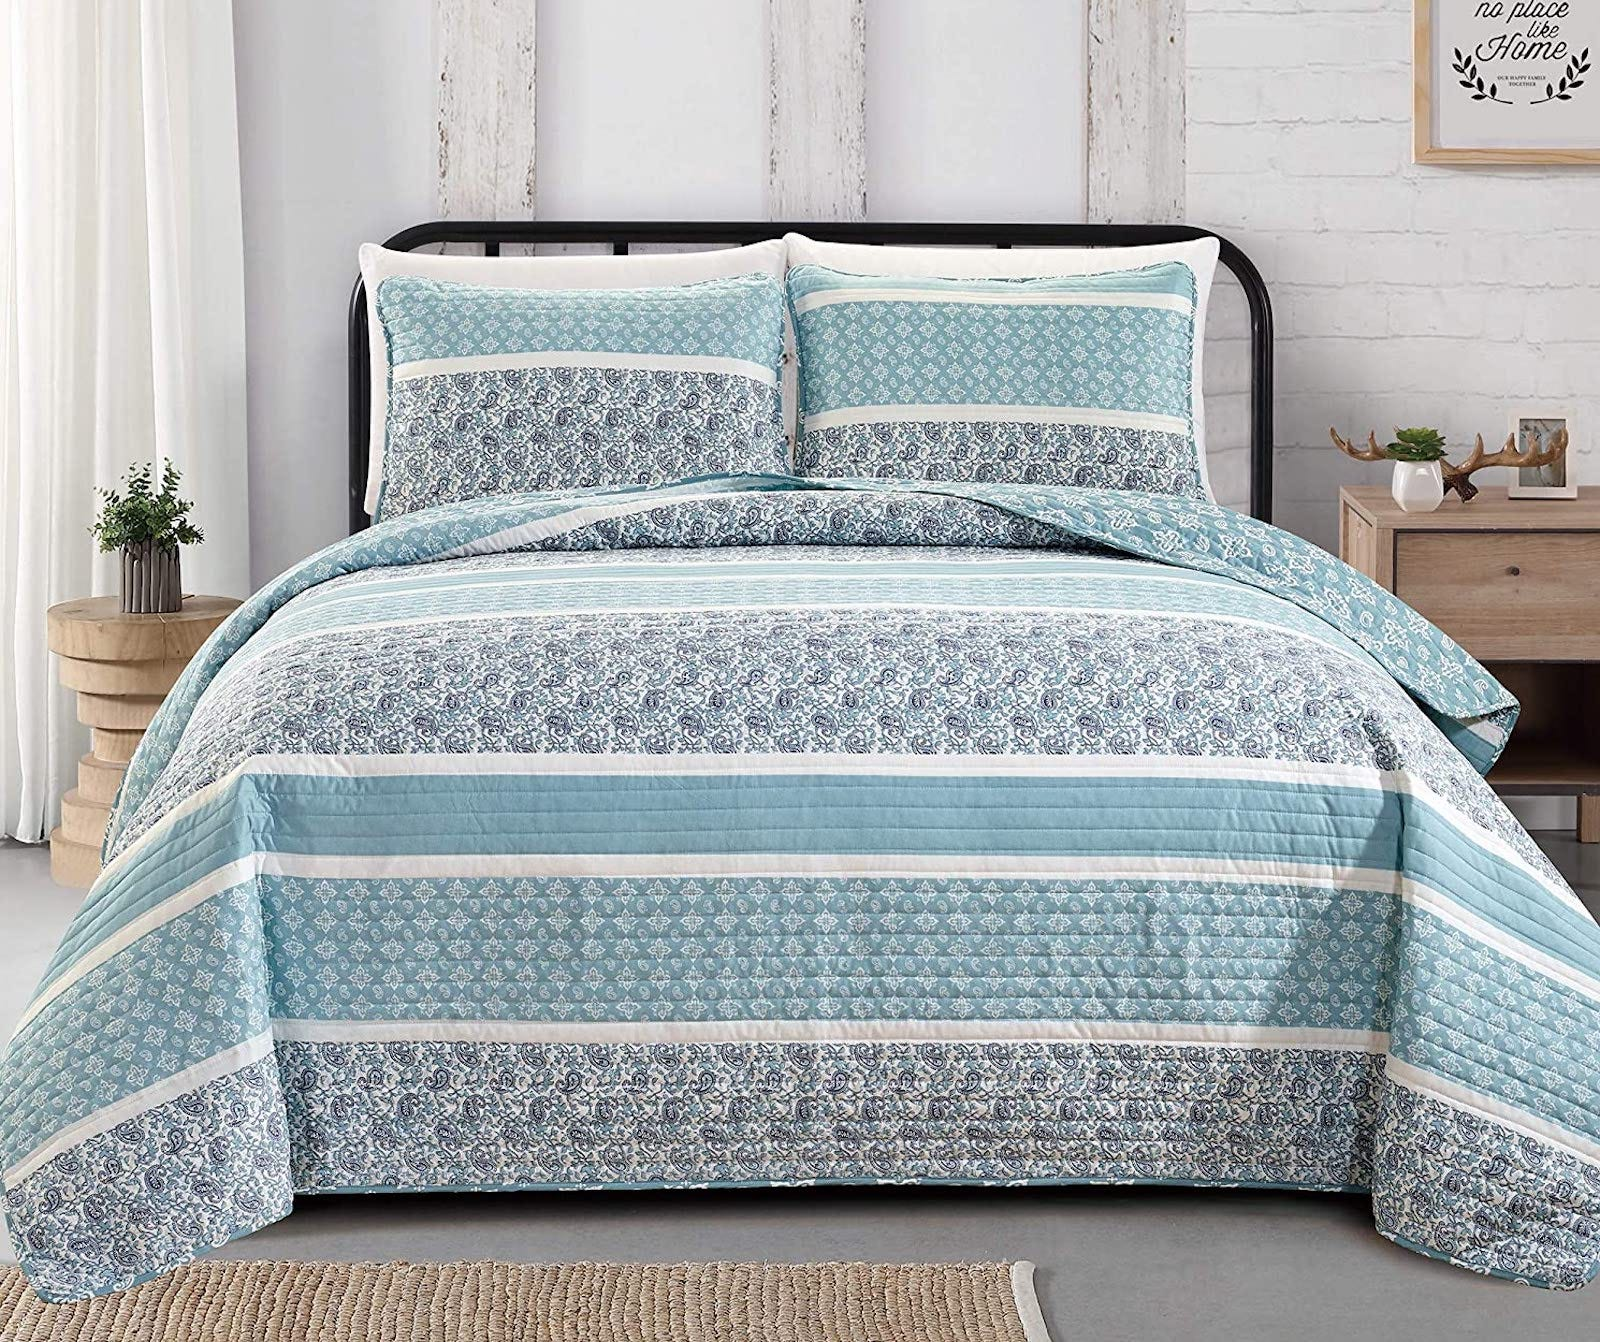 Bed with a blue striped/patterned quilt and two pillows